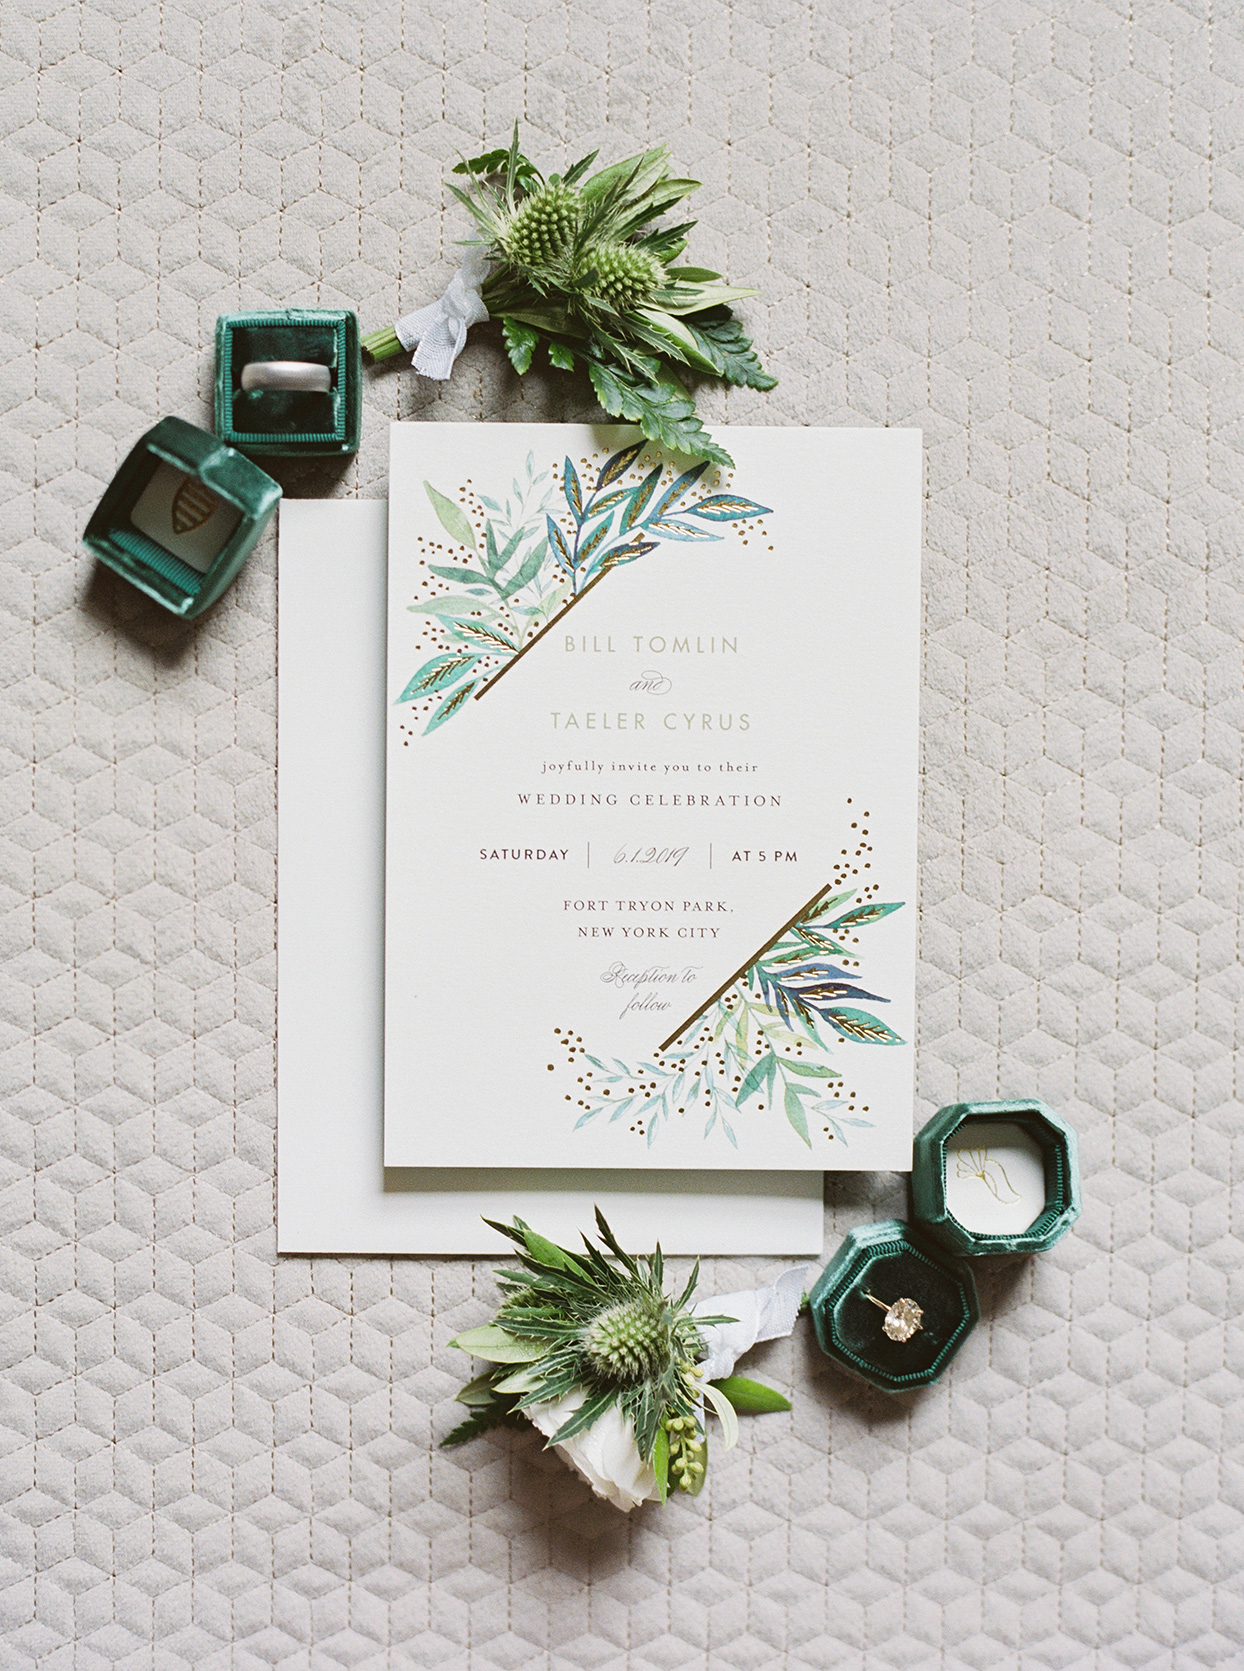 simple white wedding invitations with green and blue greenery designs